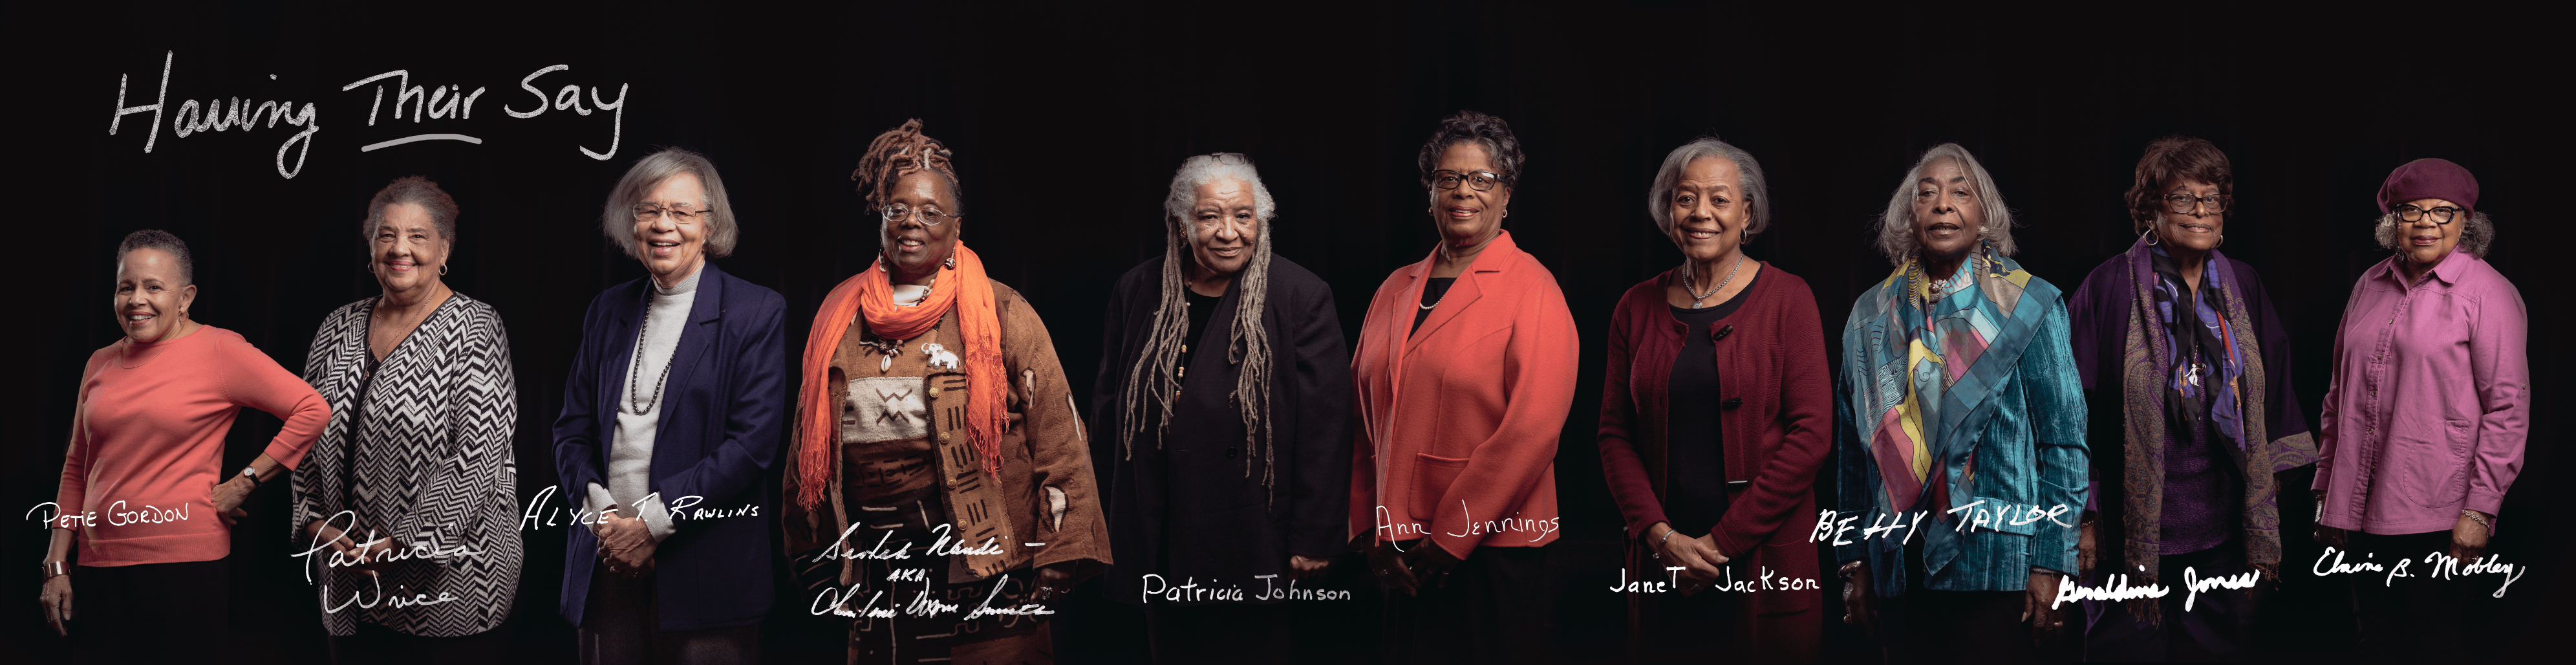 Having THEIR Say: Generations in Conversation is a project initiated by Hartford Stage and filmed by Miceli Productions, inspired by the Delany Sisters. Young Hartford area students interview women about their experiences as African-Americans through the civil rights movement to the present.